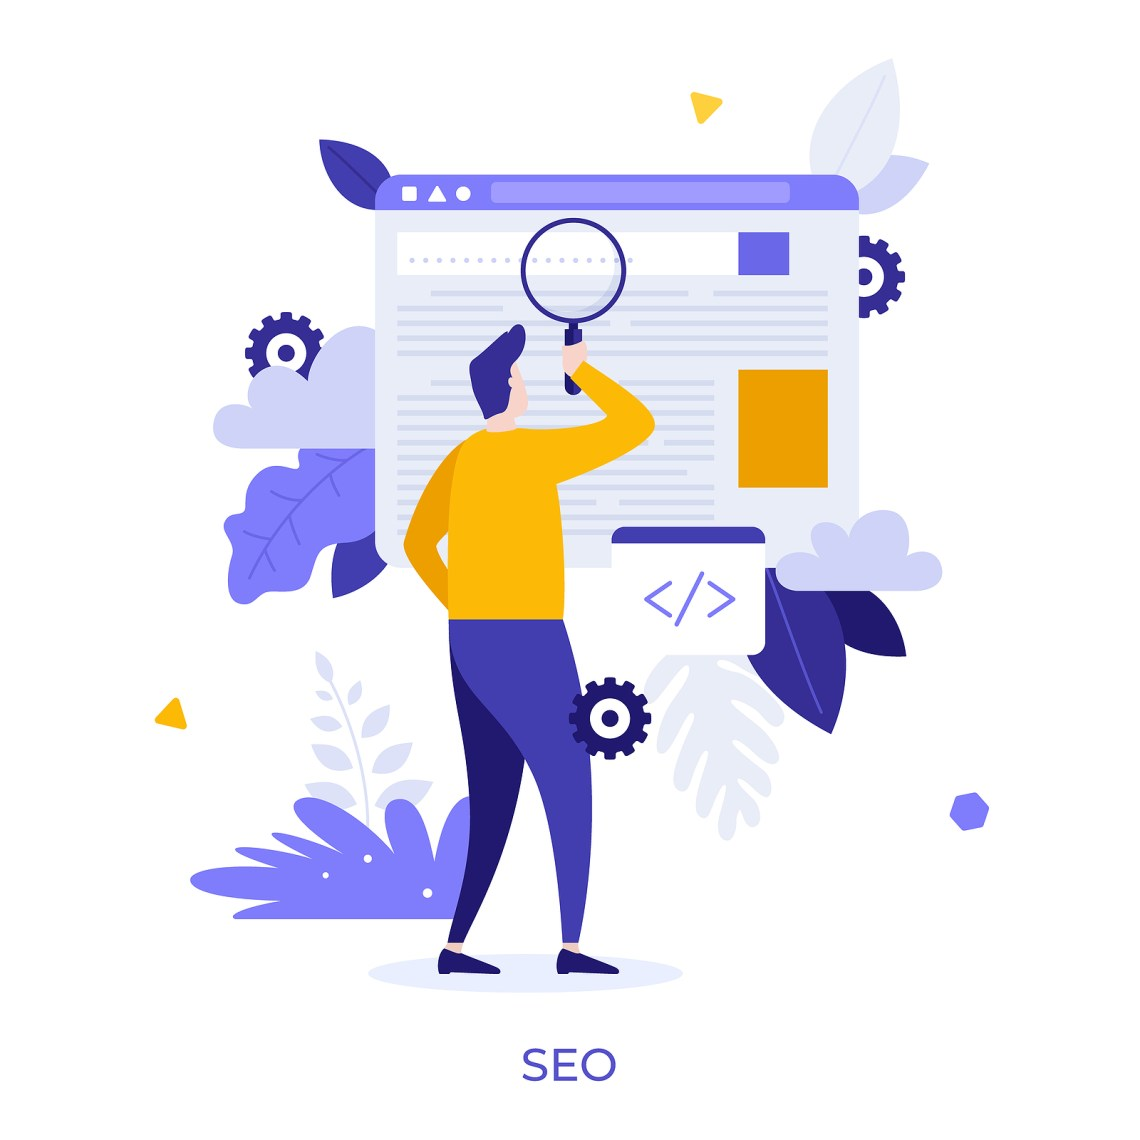 SEO Strategy to rank for Google